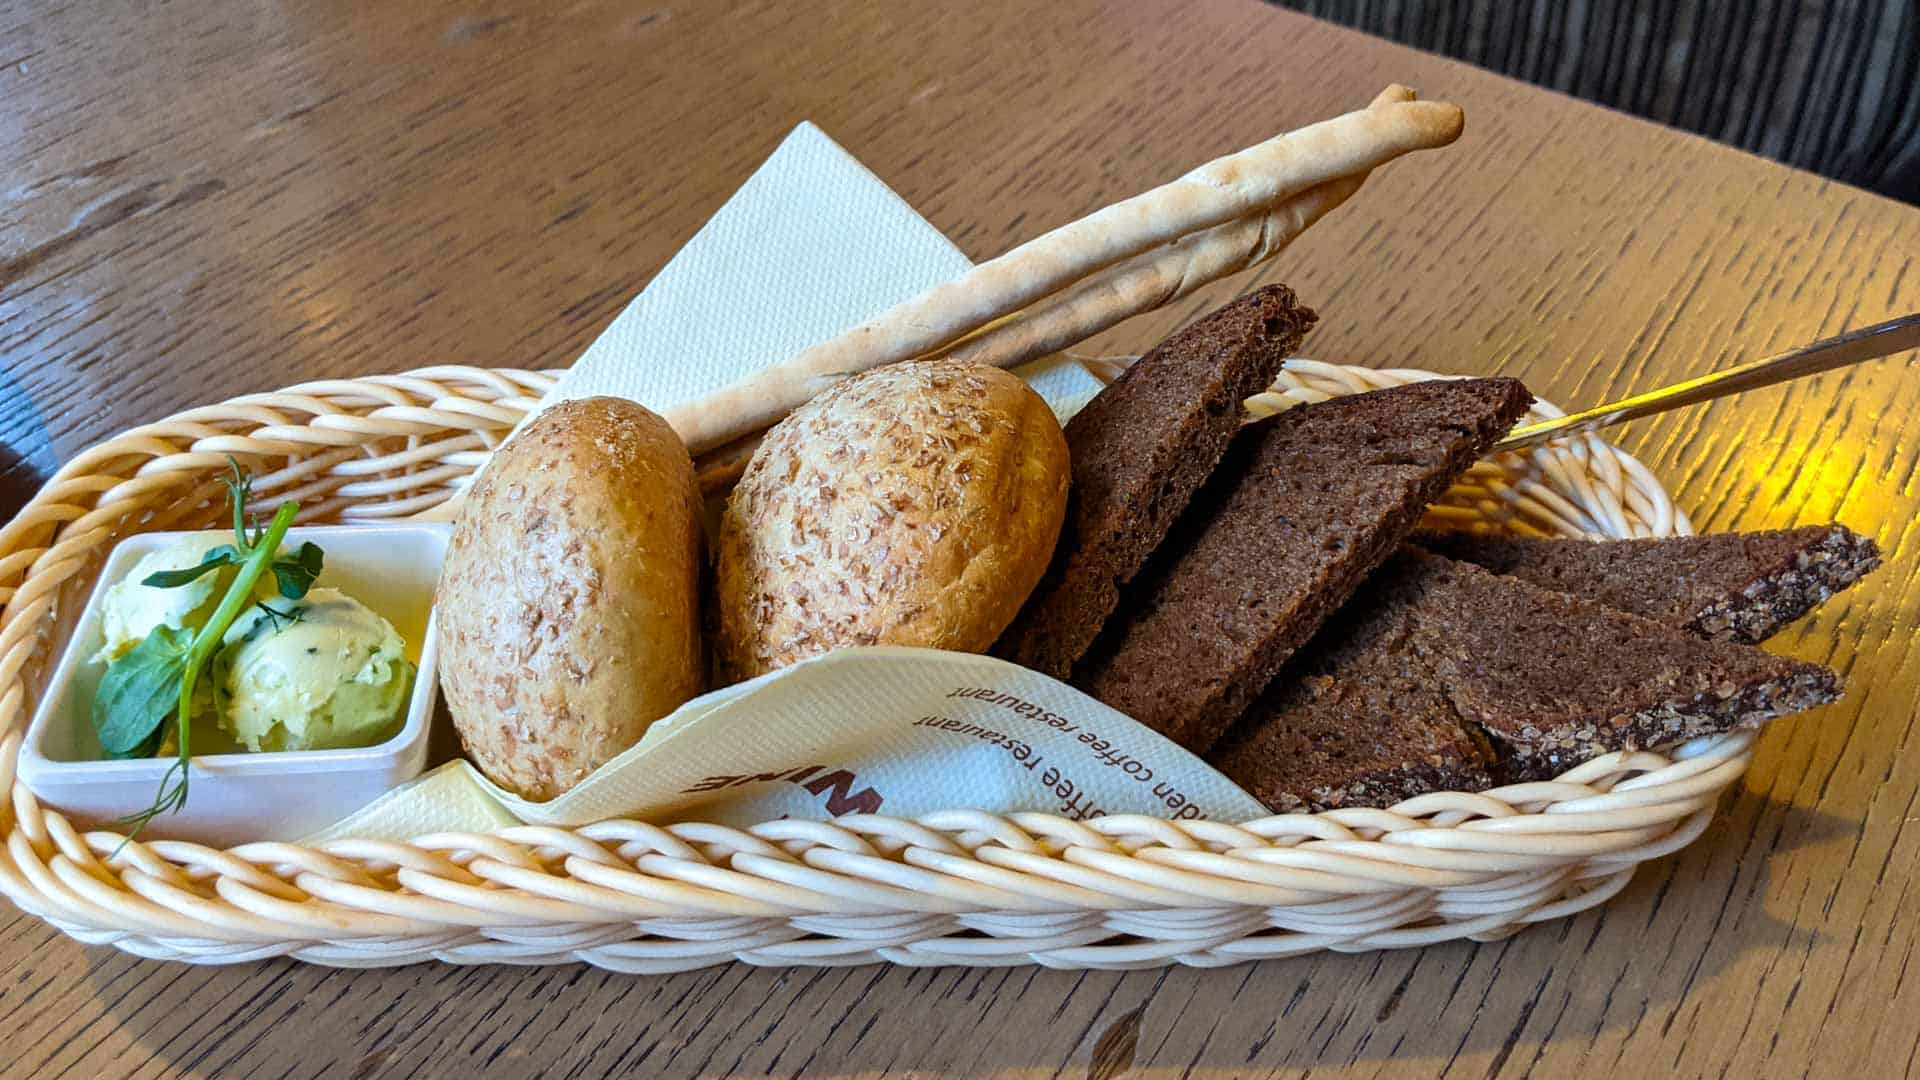 A selection of bread, including Latvian Rye Bread